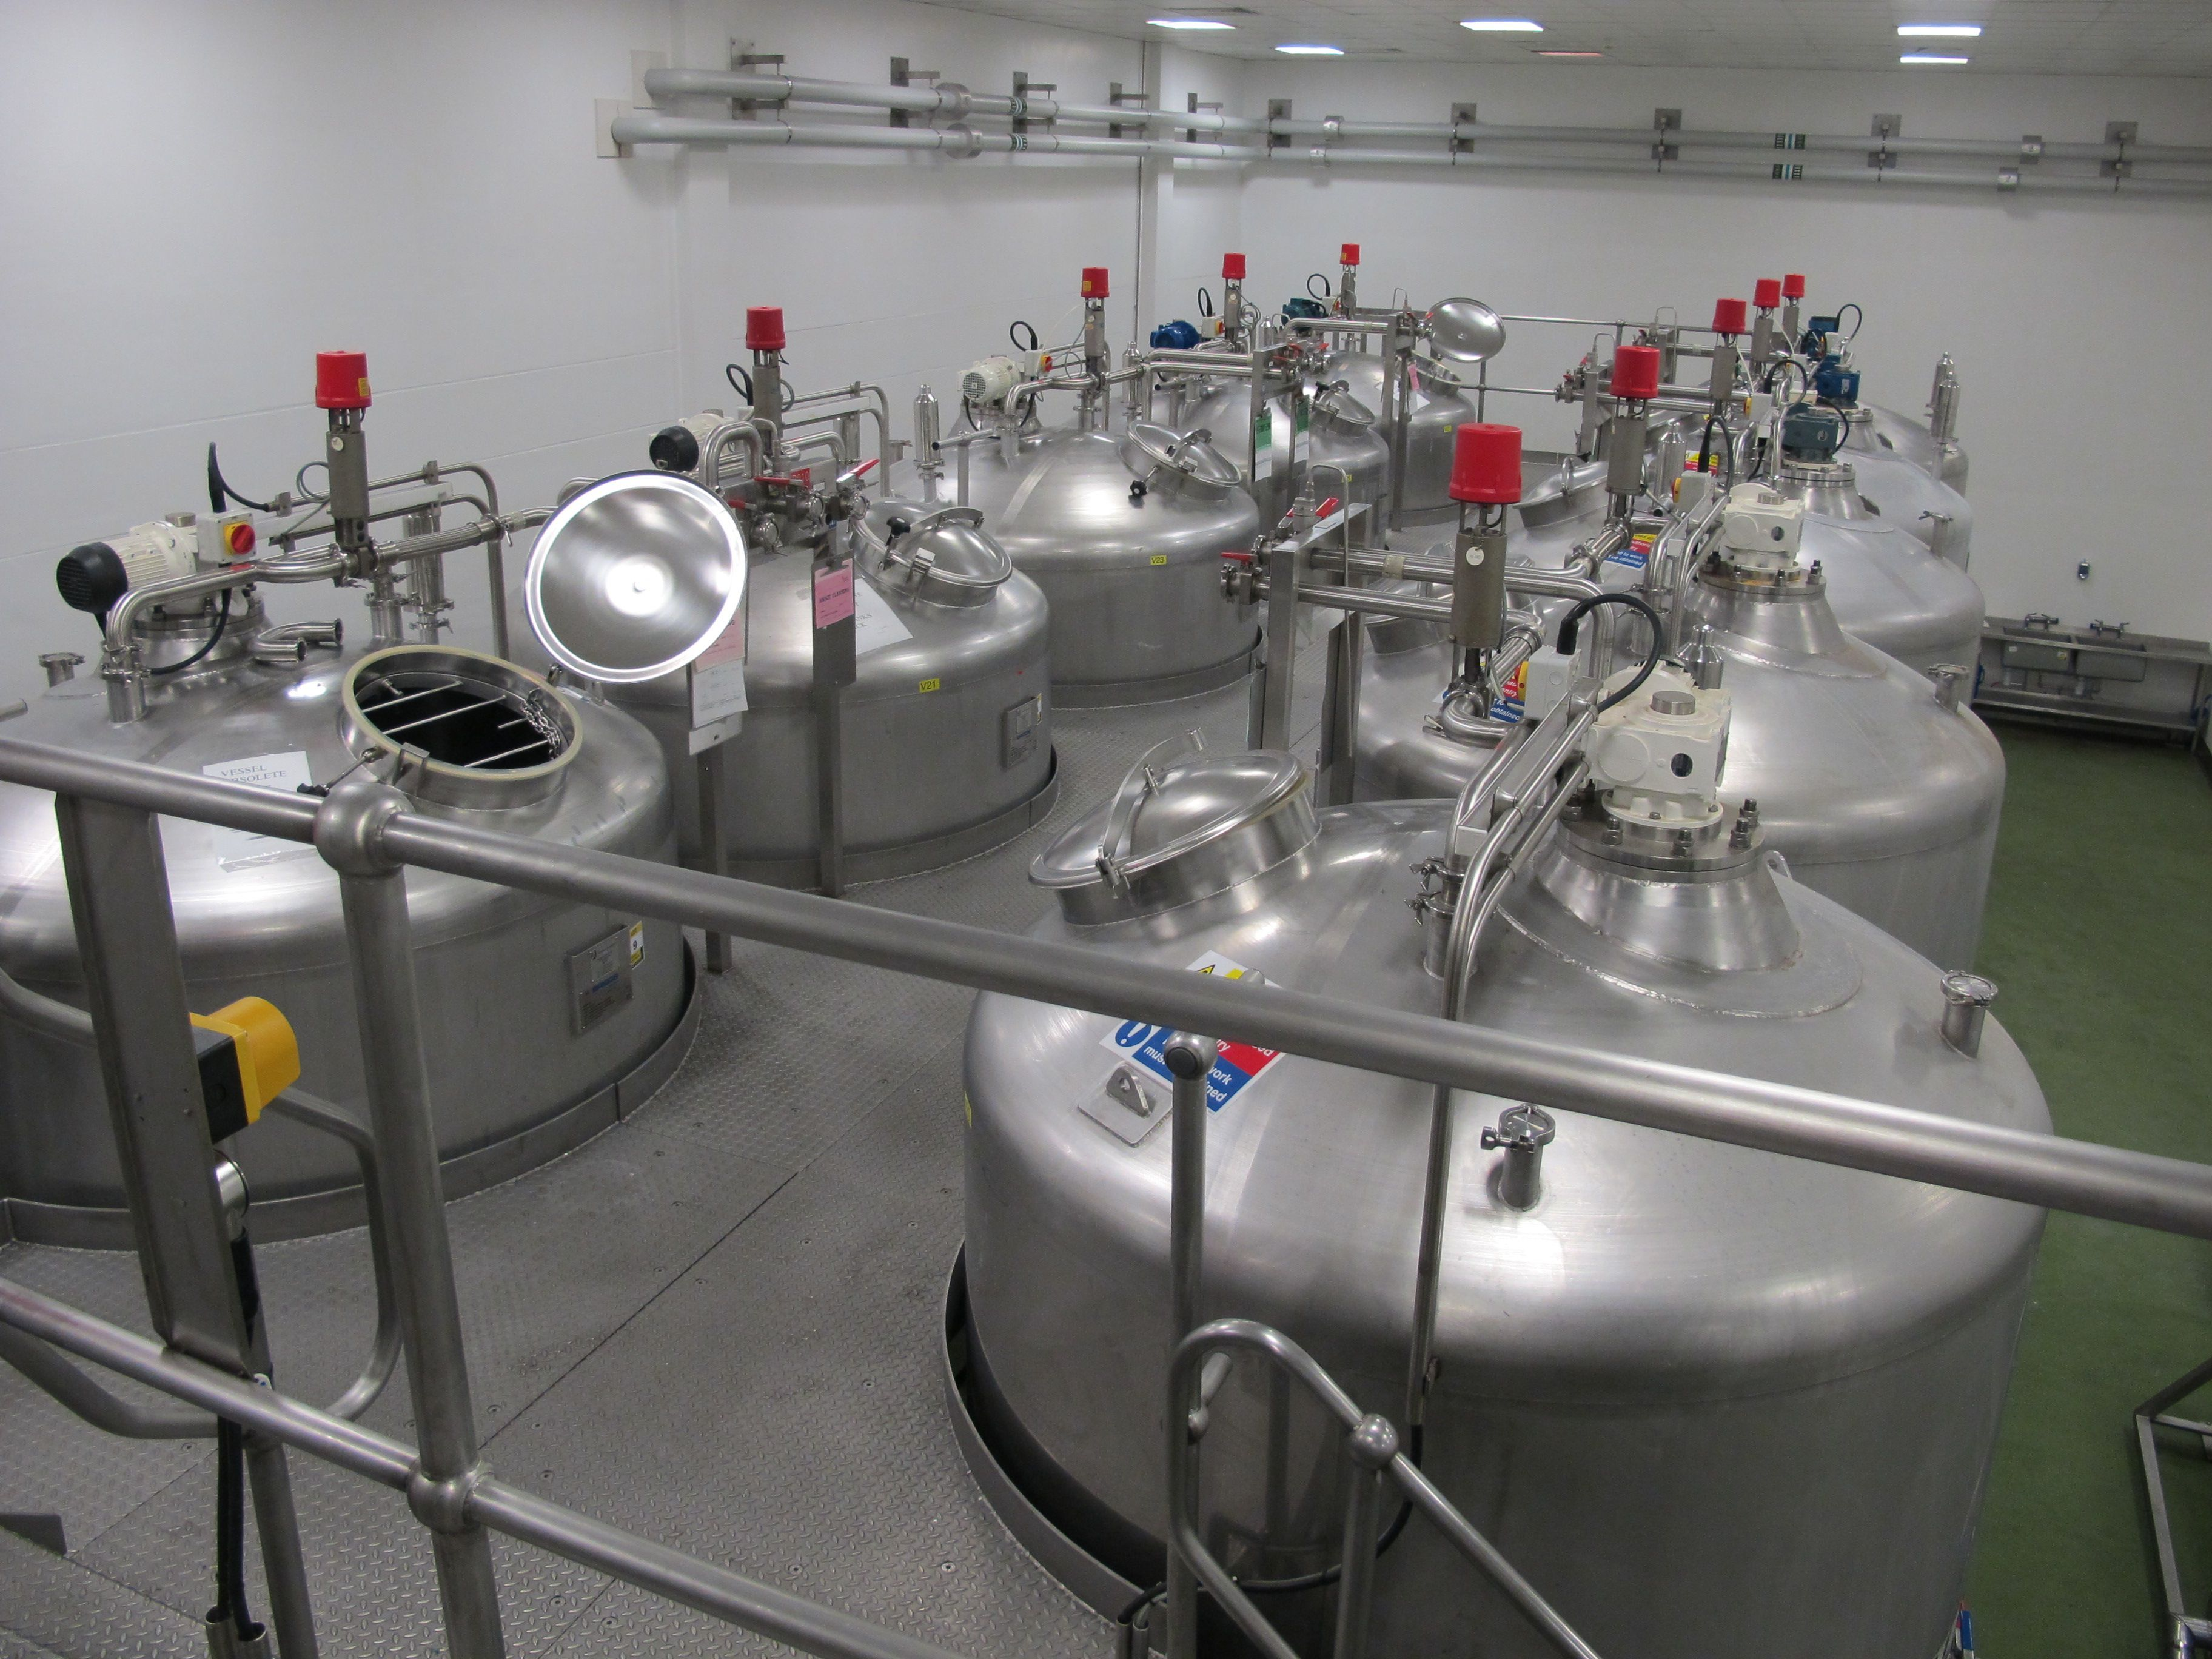 Stainless Steel Mixing Vessels Used In A Cosmetics